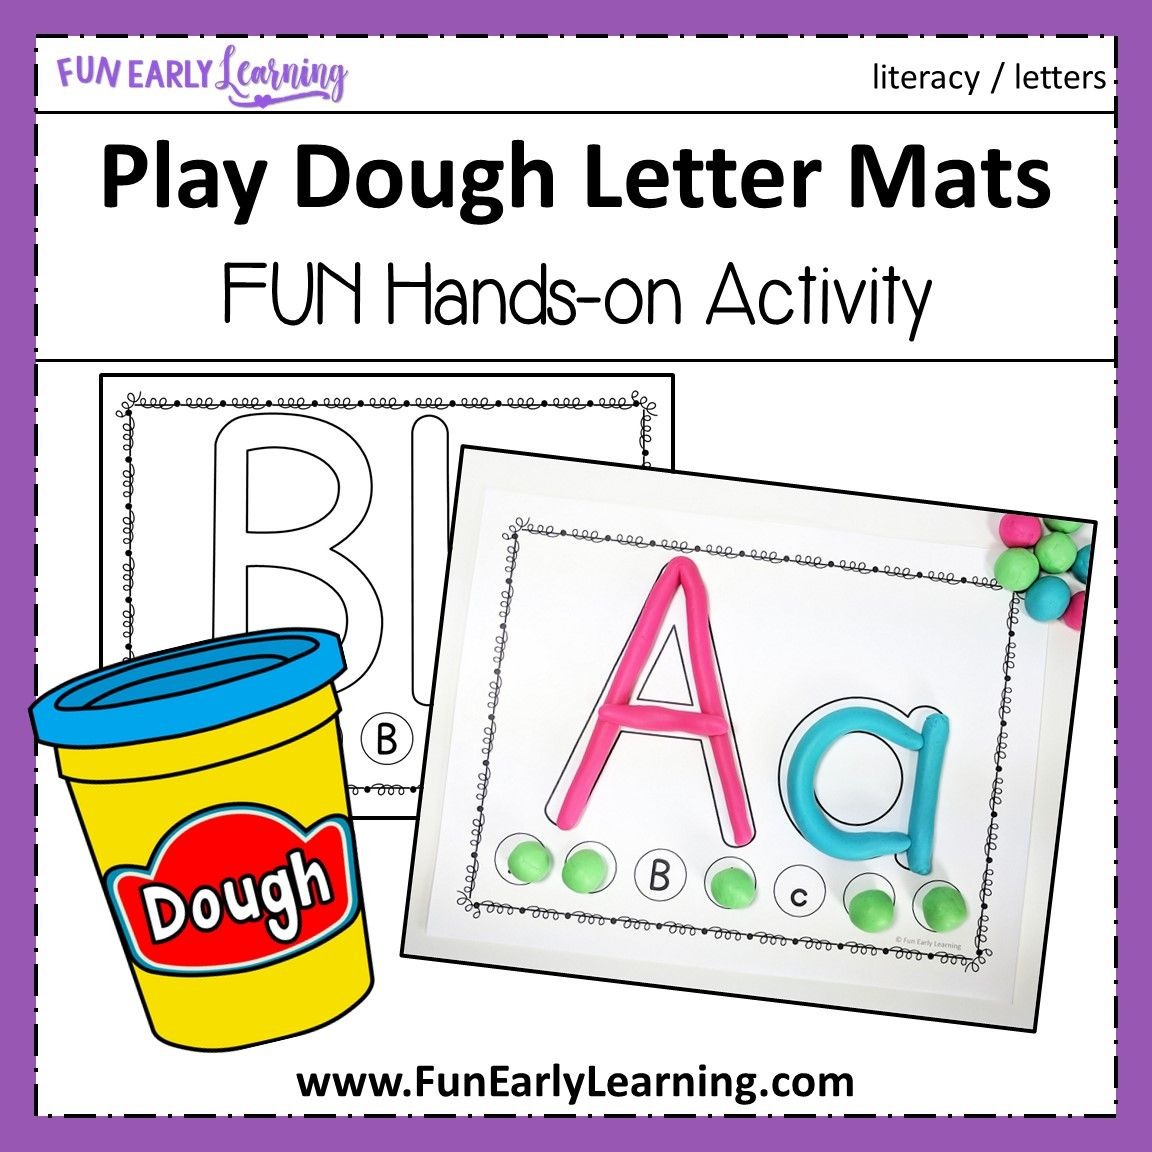 Play Dough Letter Mats